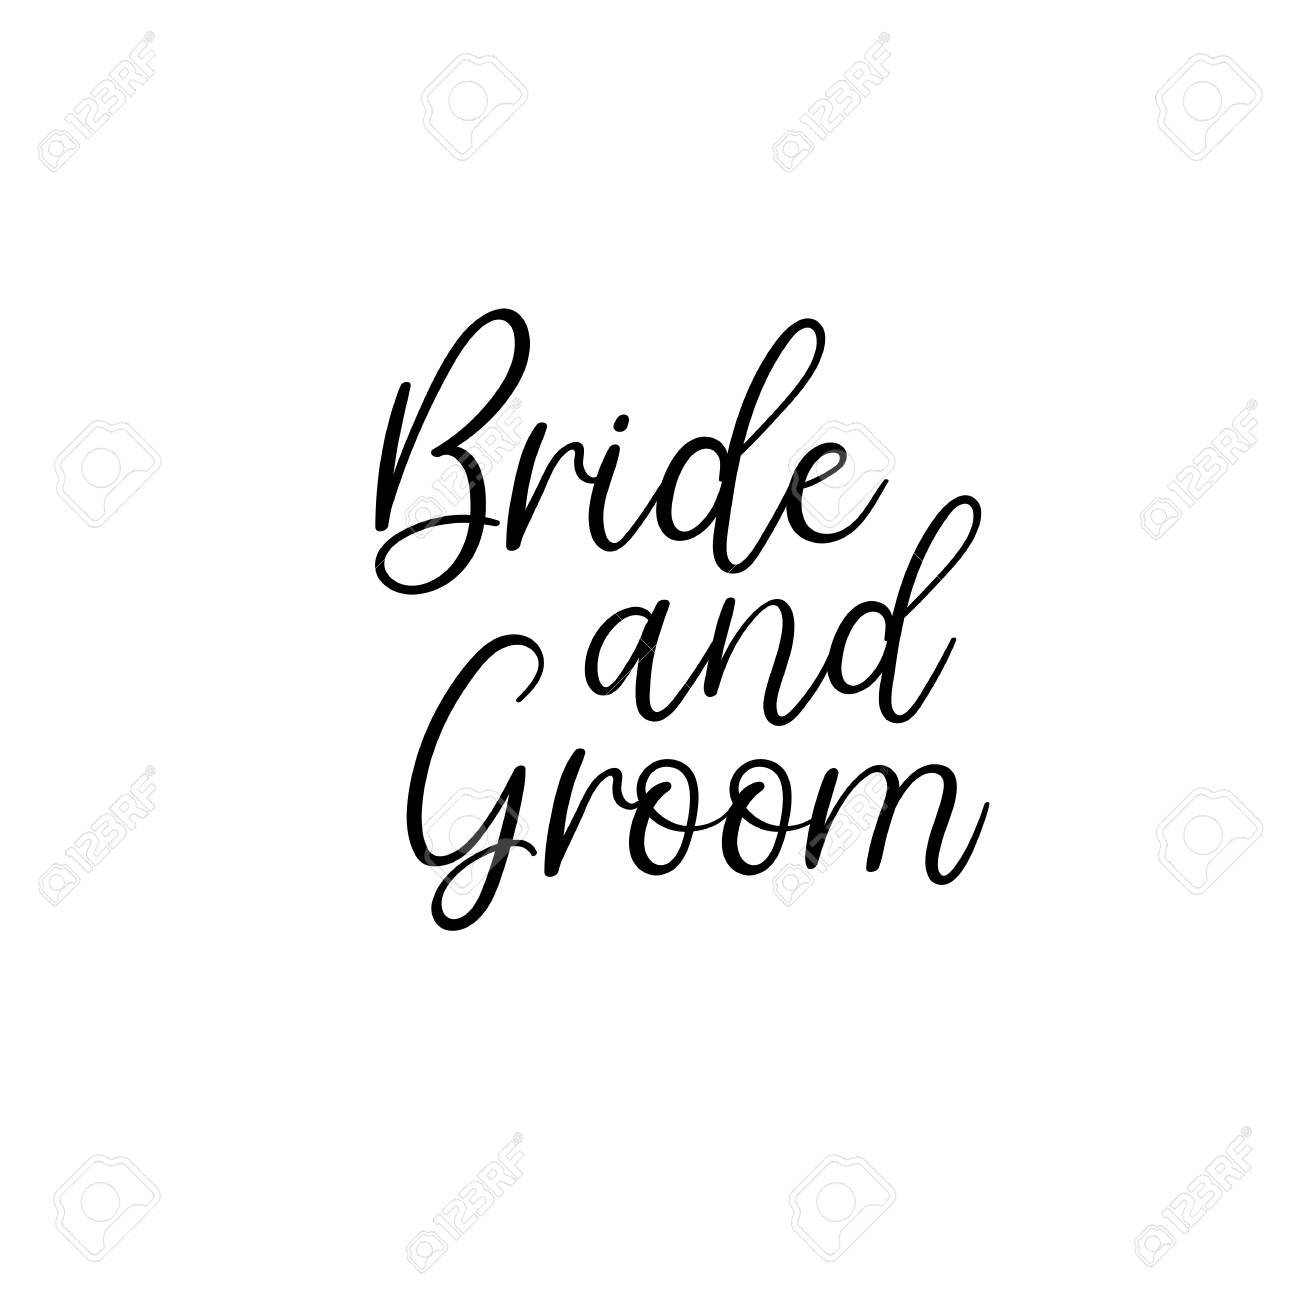 Bride And Groom Handwritten Text Calligraphy Inscription For